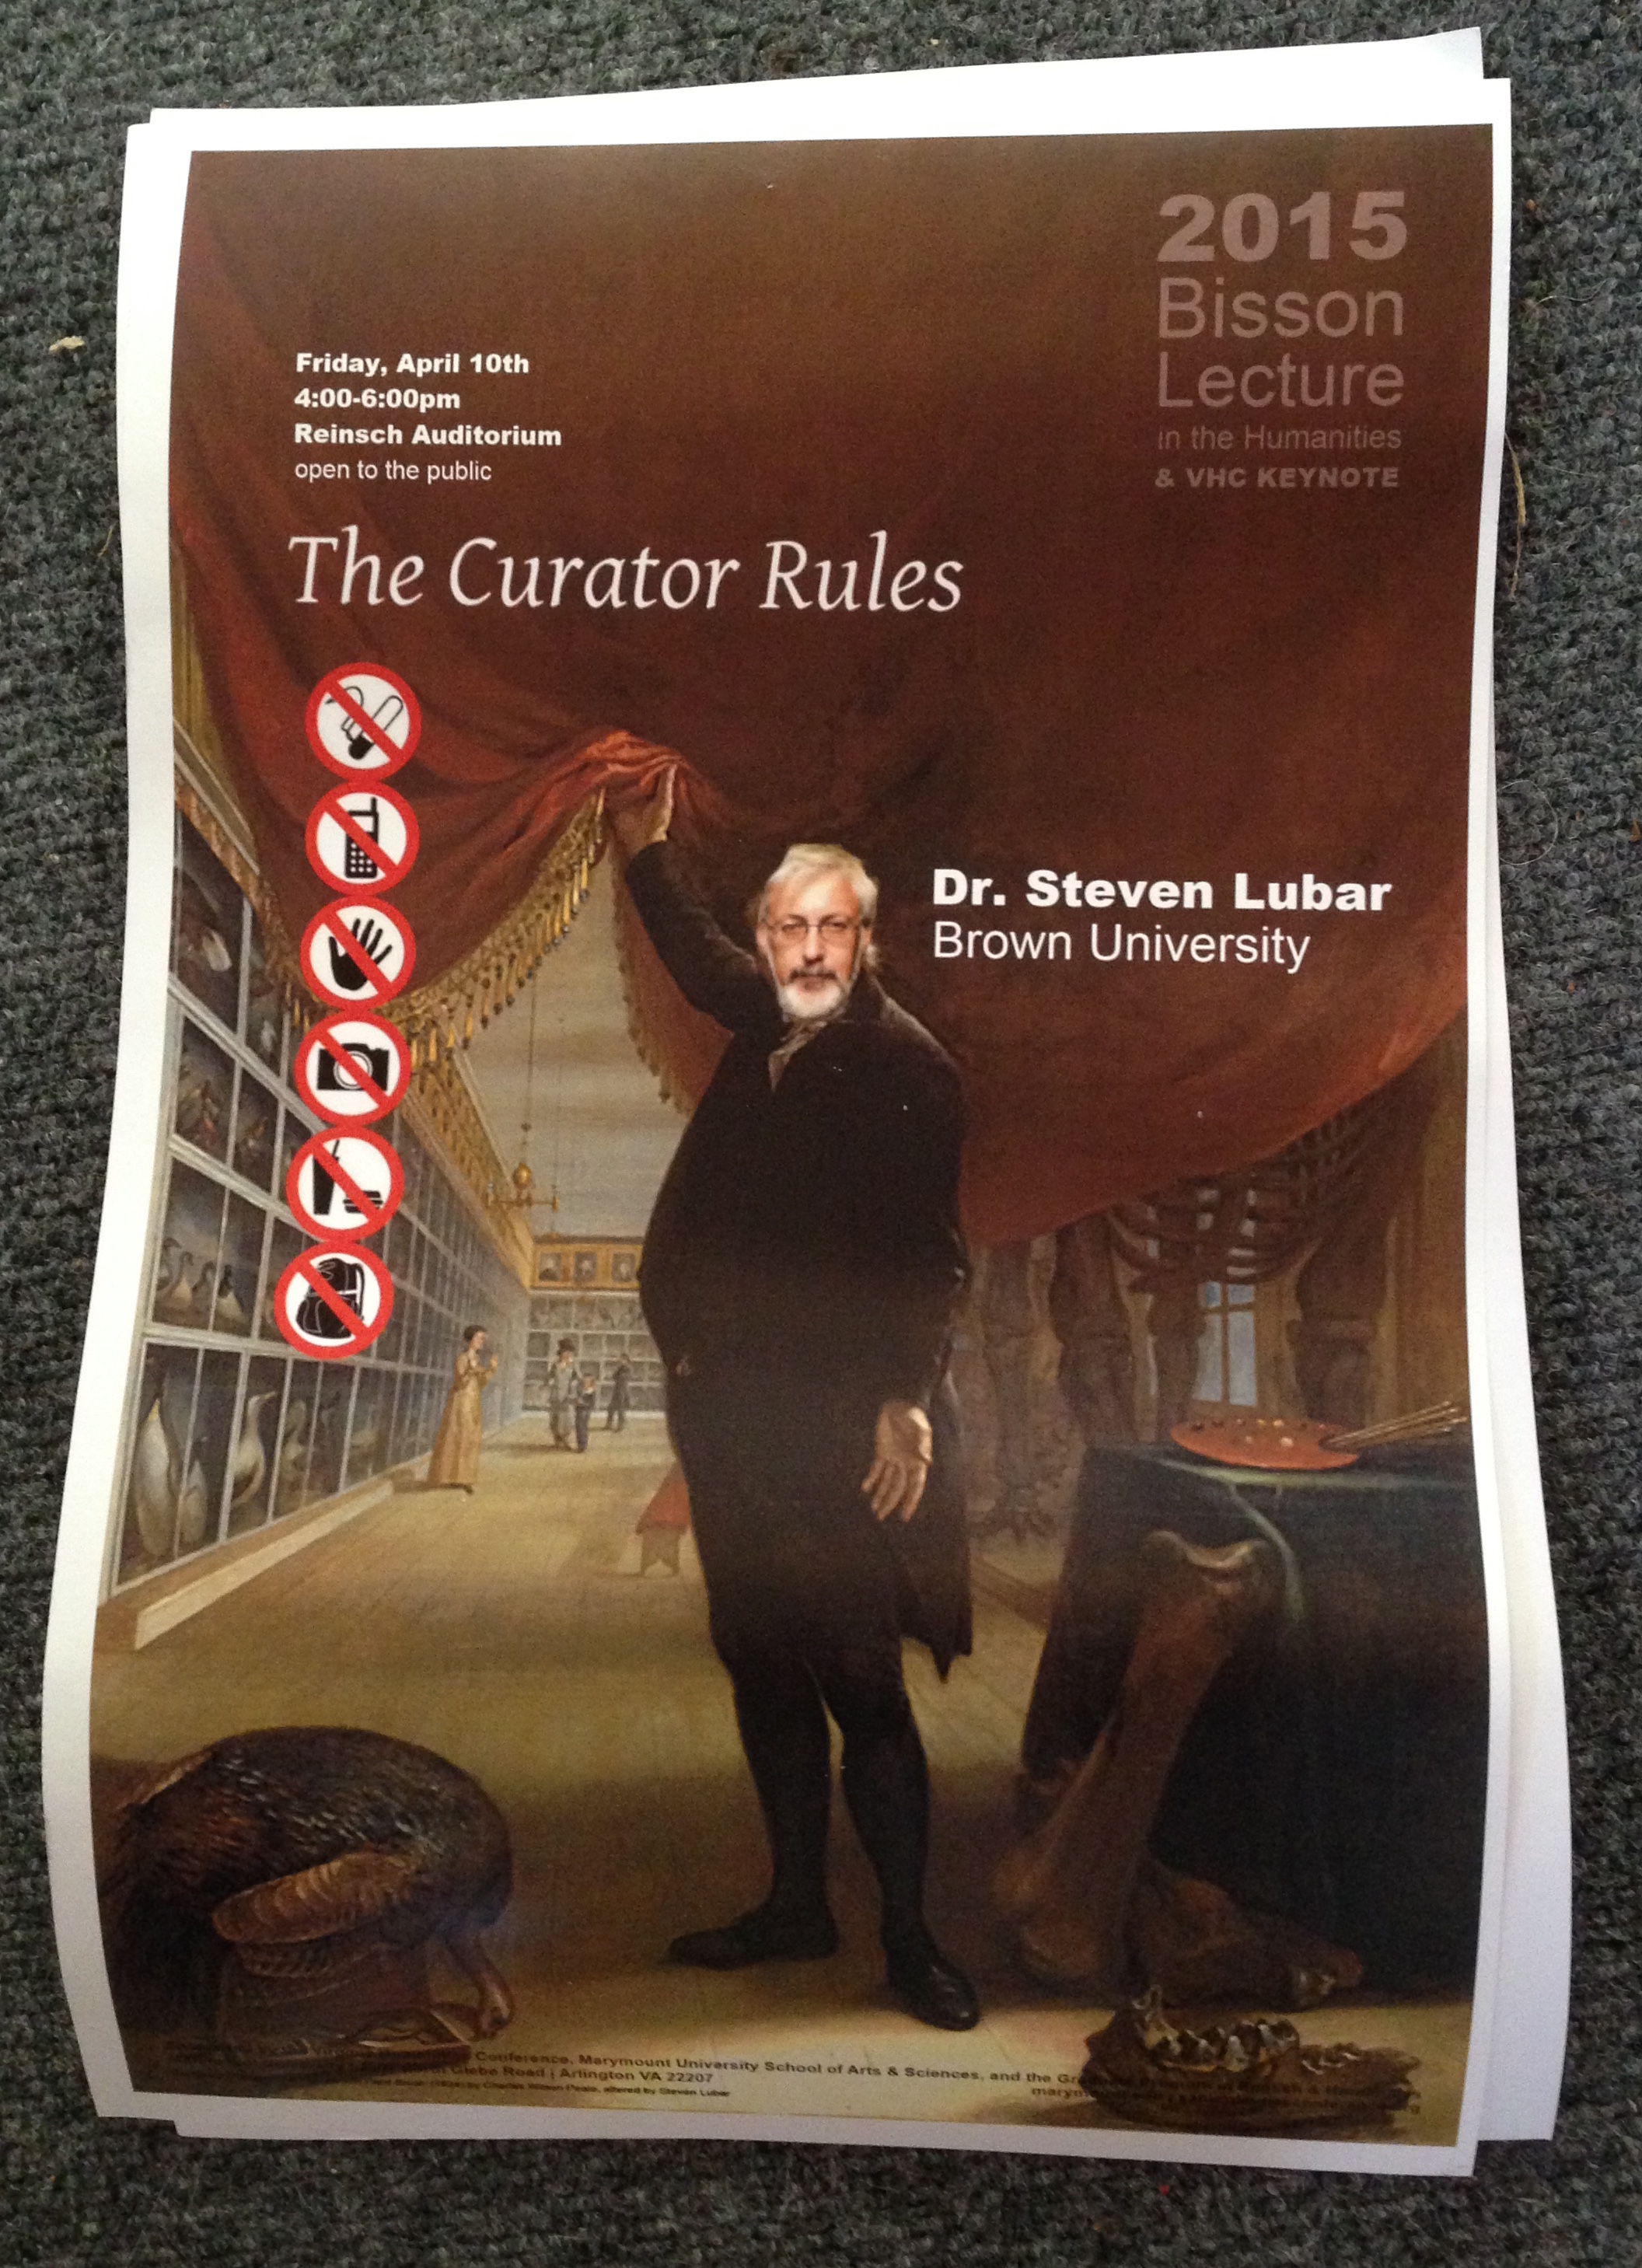 Tonya Howe designed this fine poster. With apologies to Mr. Peale.